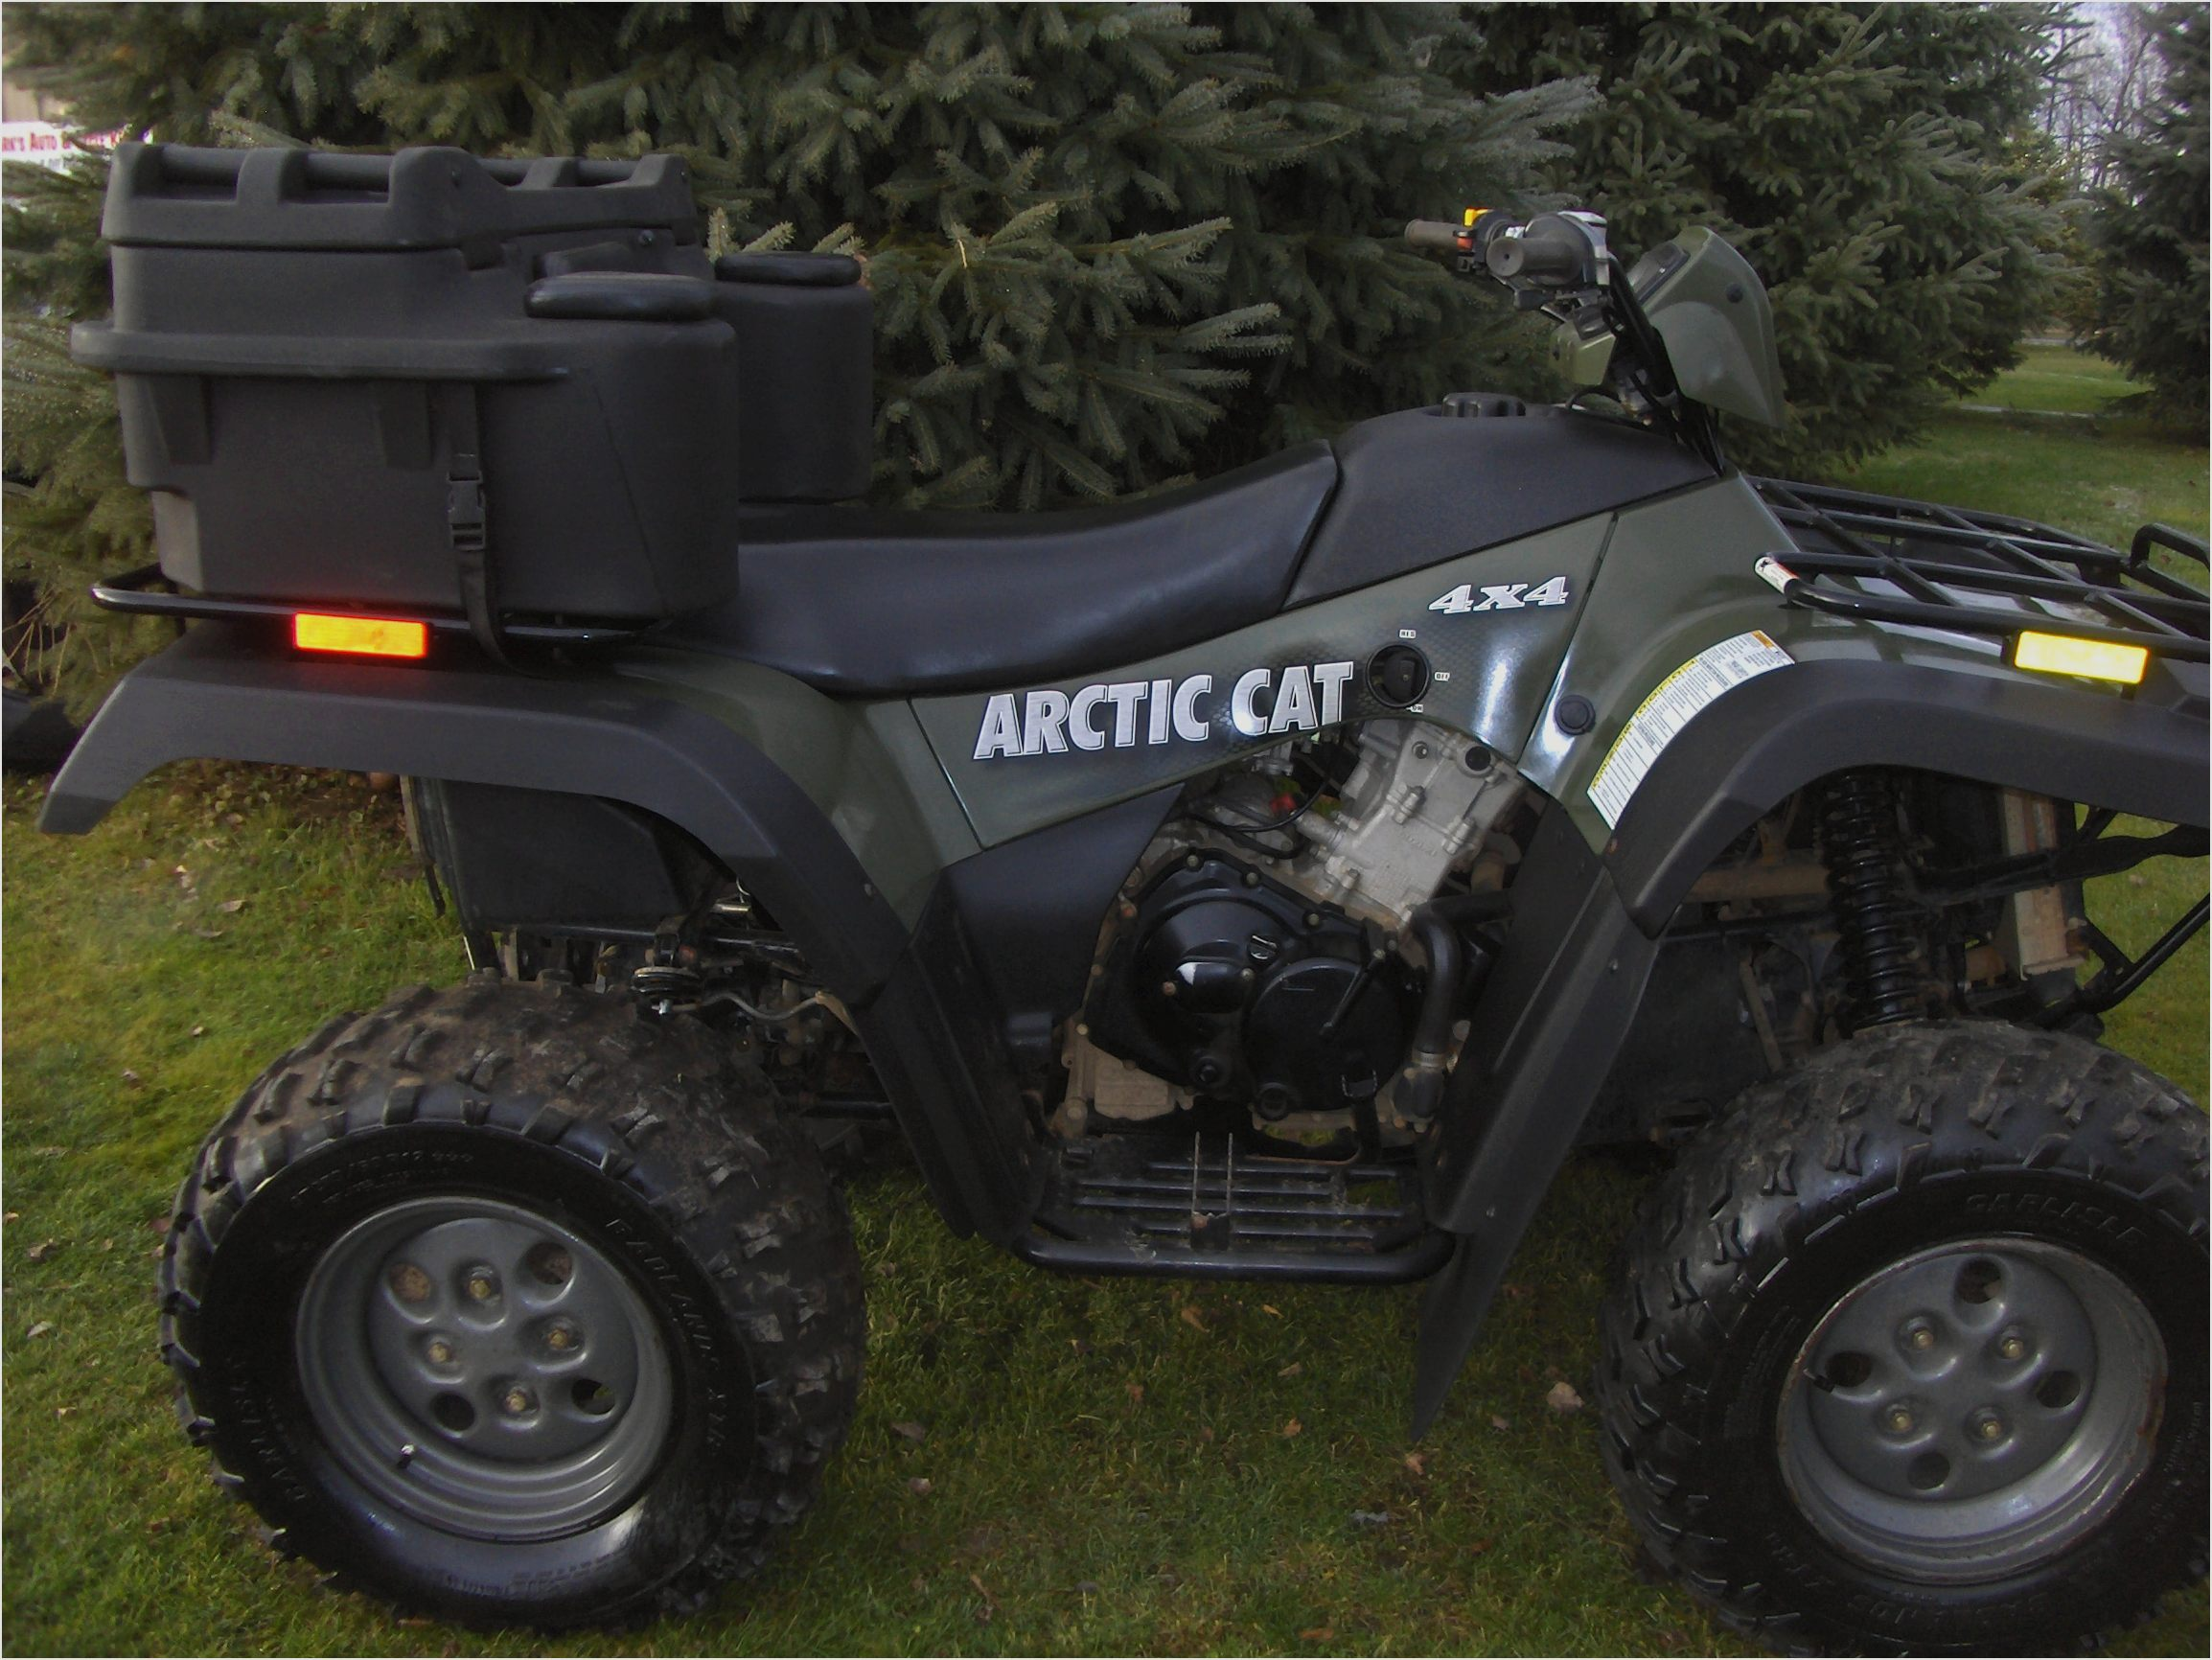 Arctic Cat 500 1999 images #92020